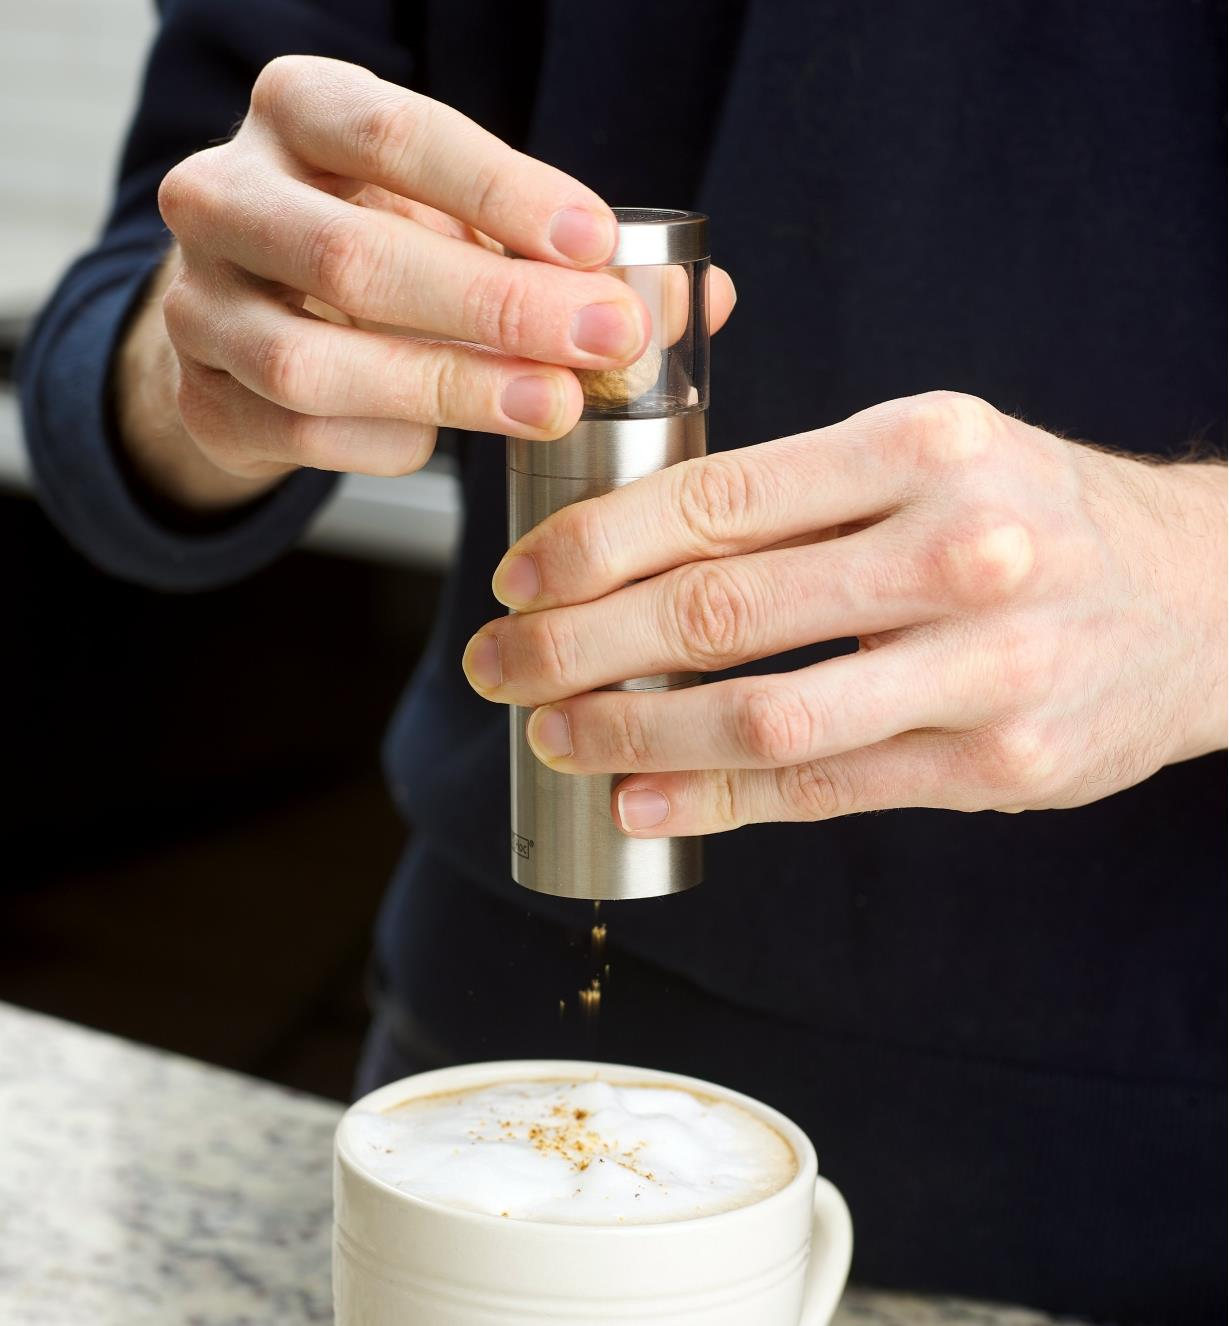 Using the nutmeg grinder over a mug of coffee